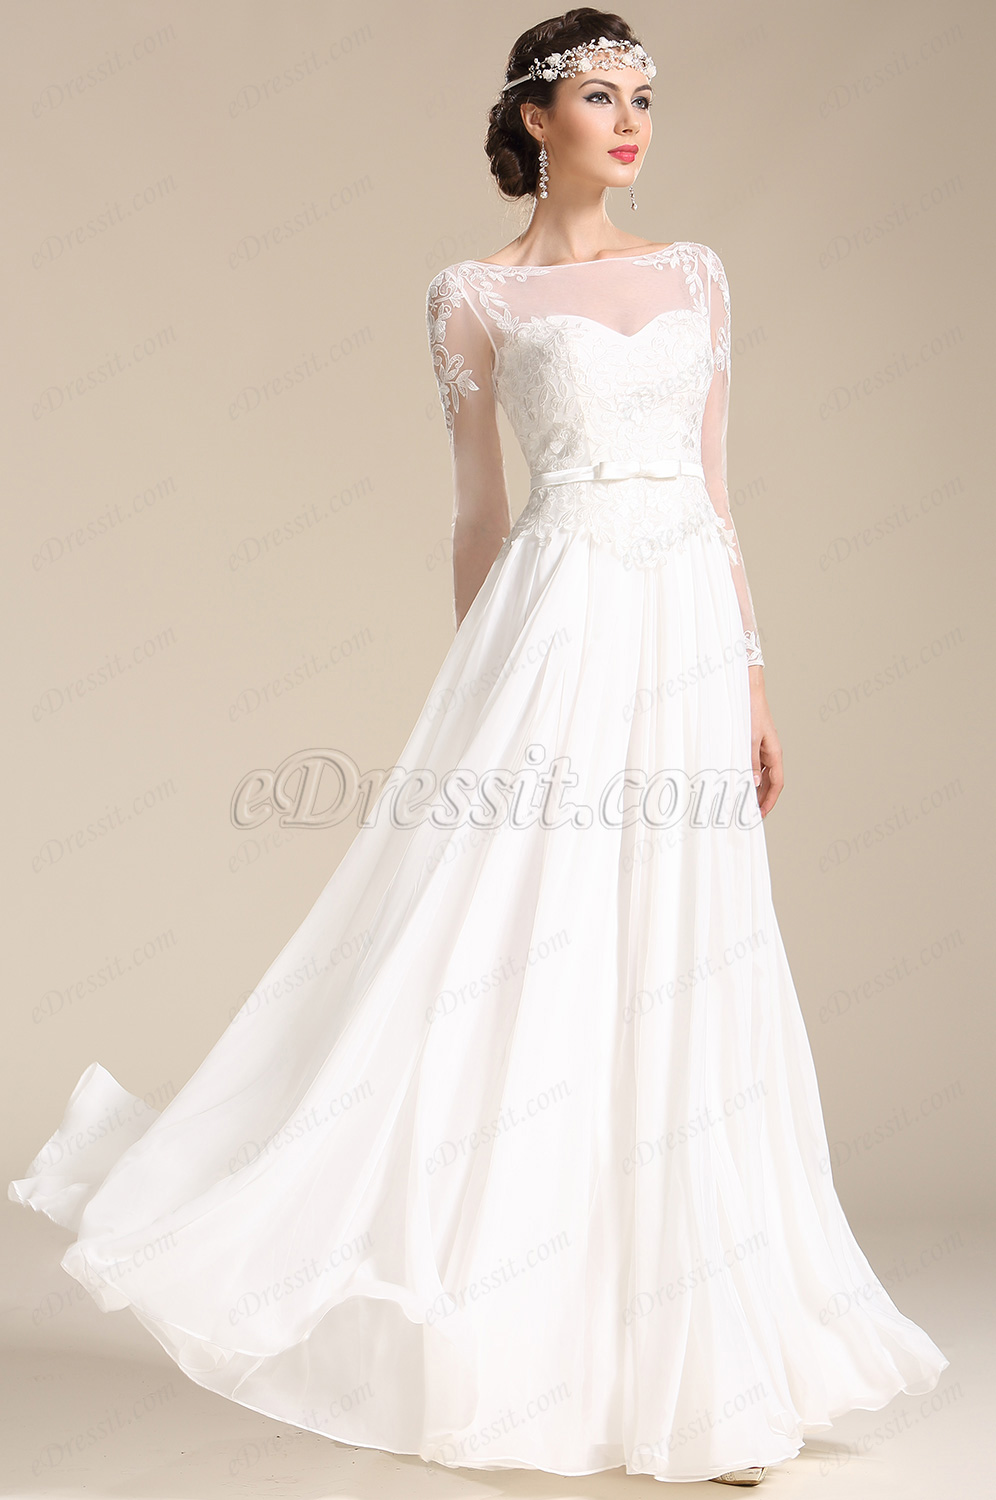 Simple Elegance New Wedding Dress Trends You Ll Love